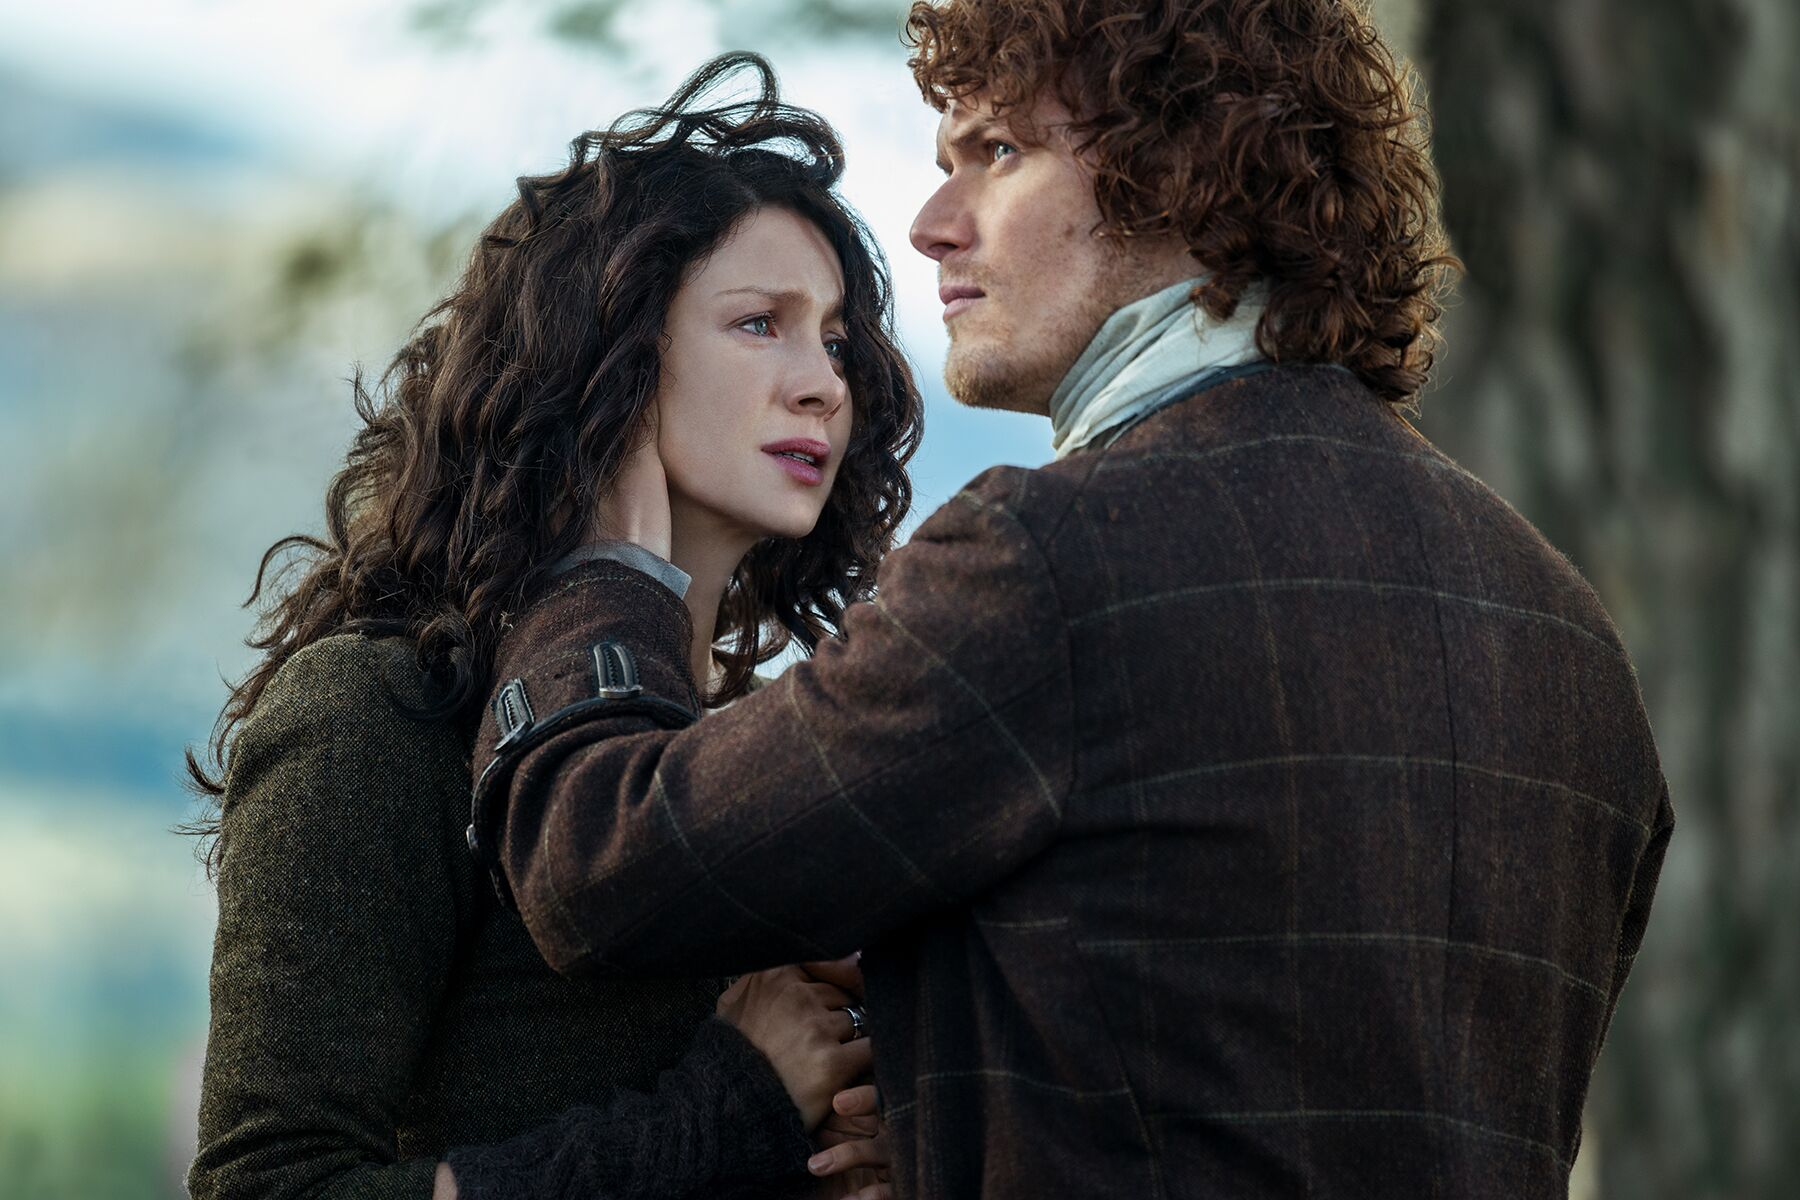 TV Time users rank Outlander Season 2's finale as one of the best season finales ever